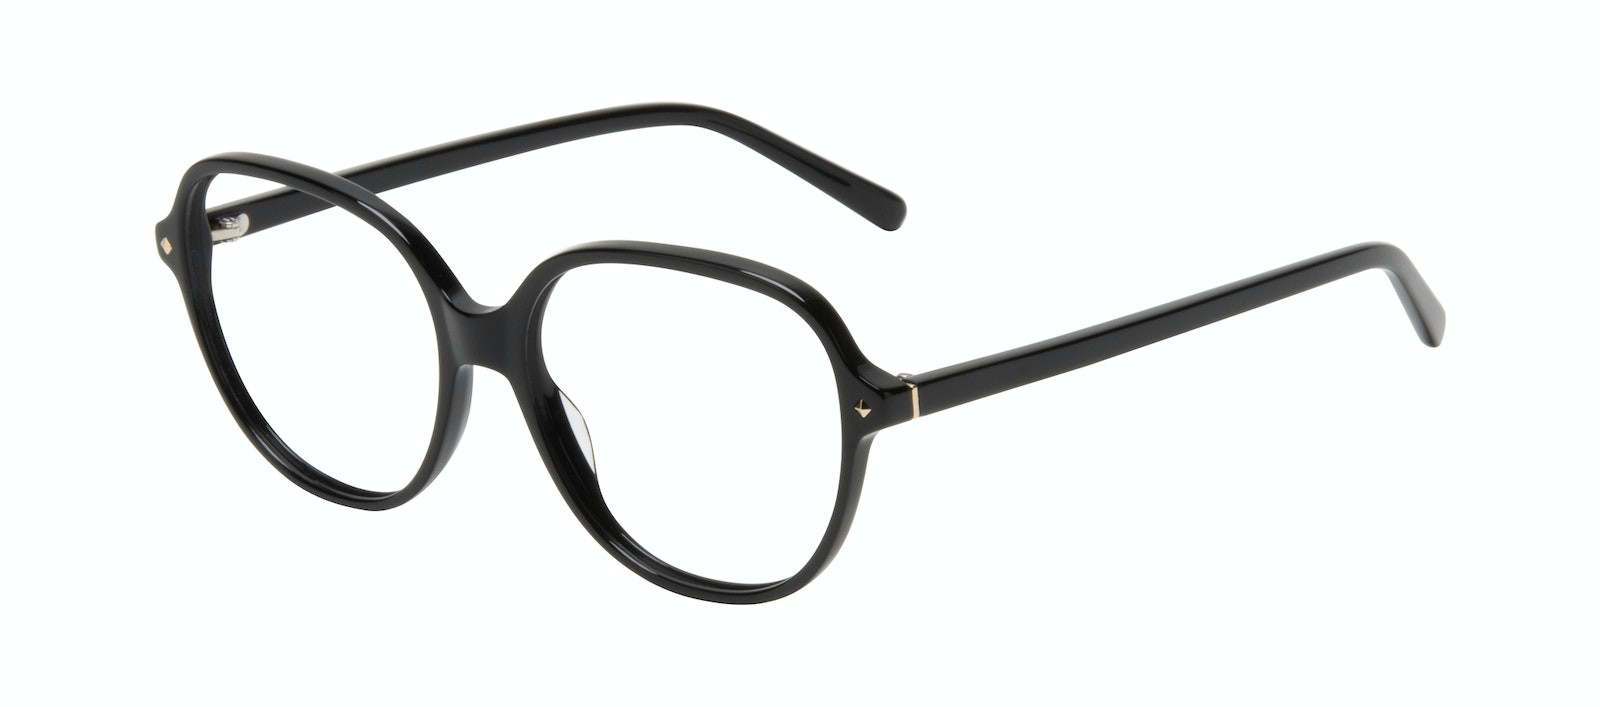 Affordable Fashion Glasses Round Eyeglasses Women Covet Onyx Tilt